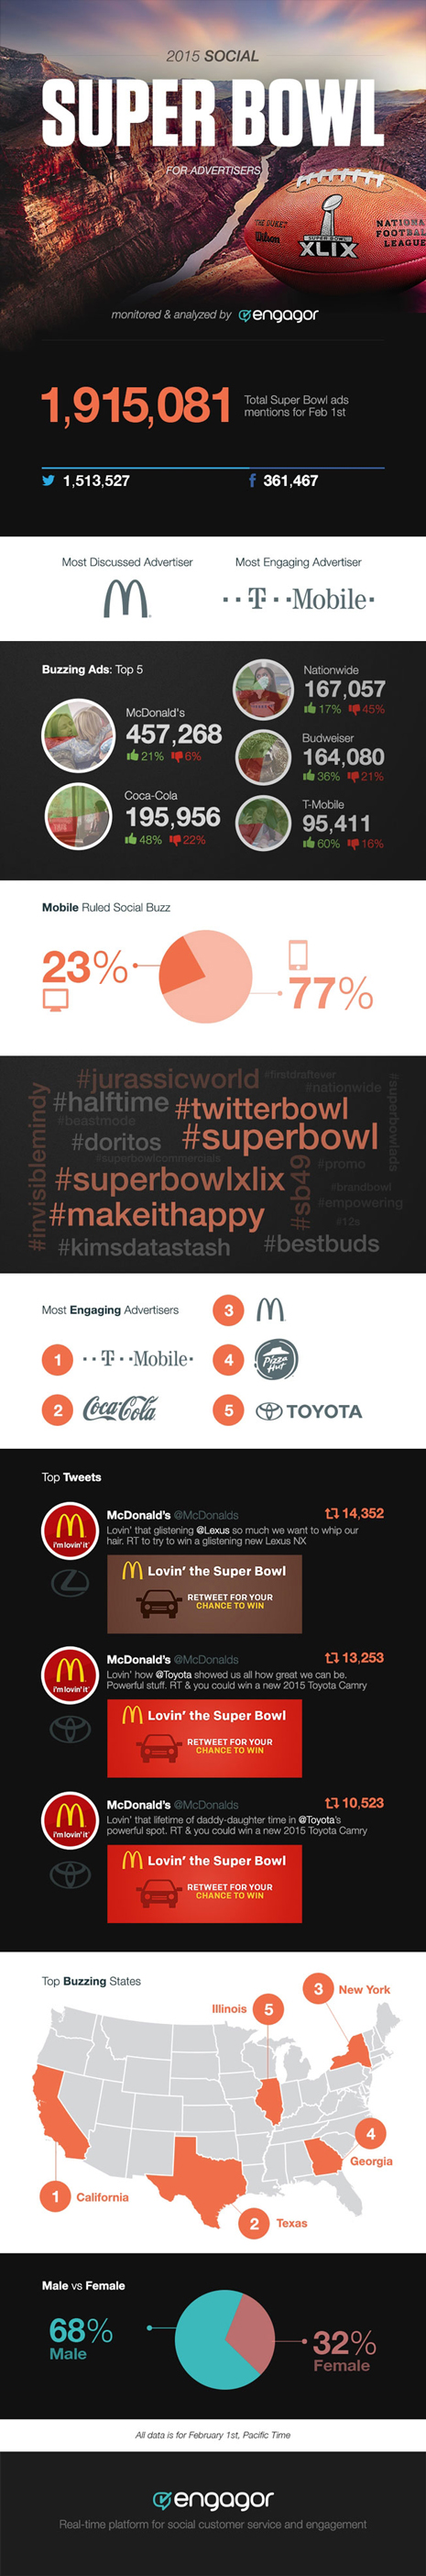 super-bowl-inforgraphic-01-2015_0 2